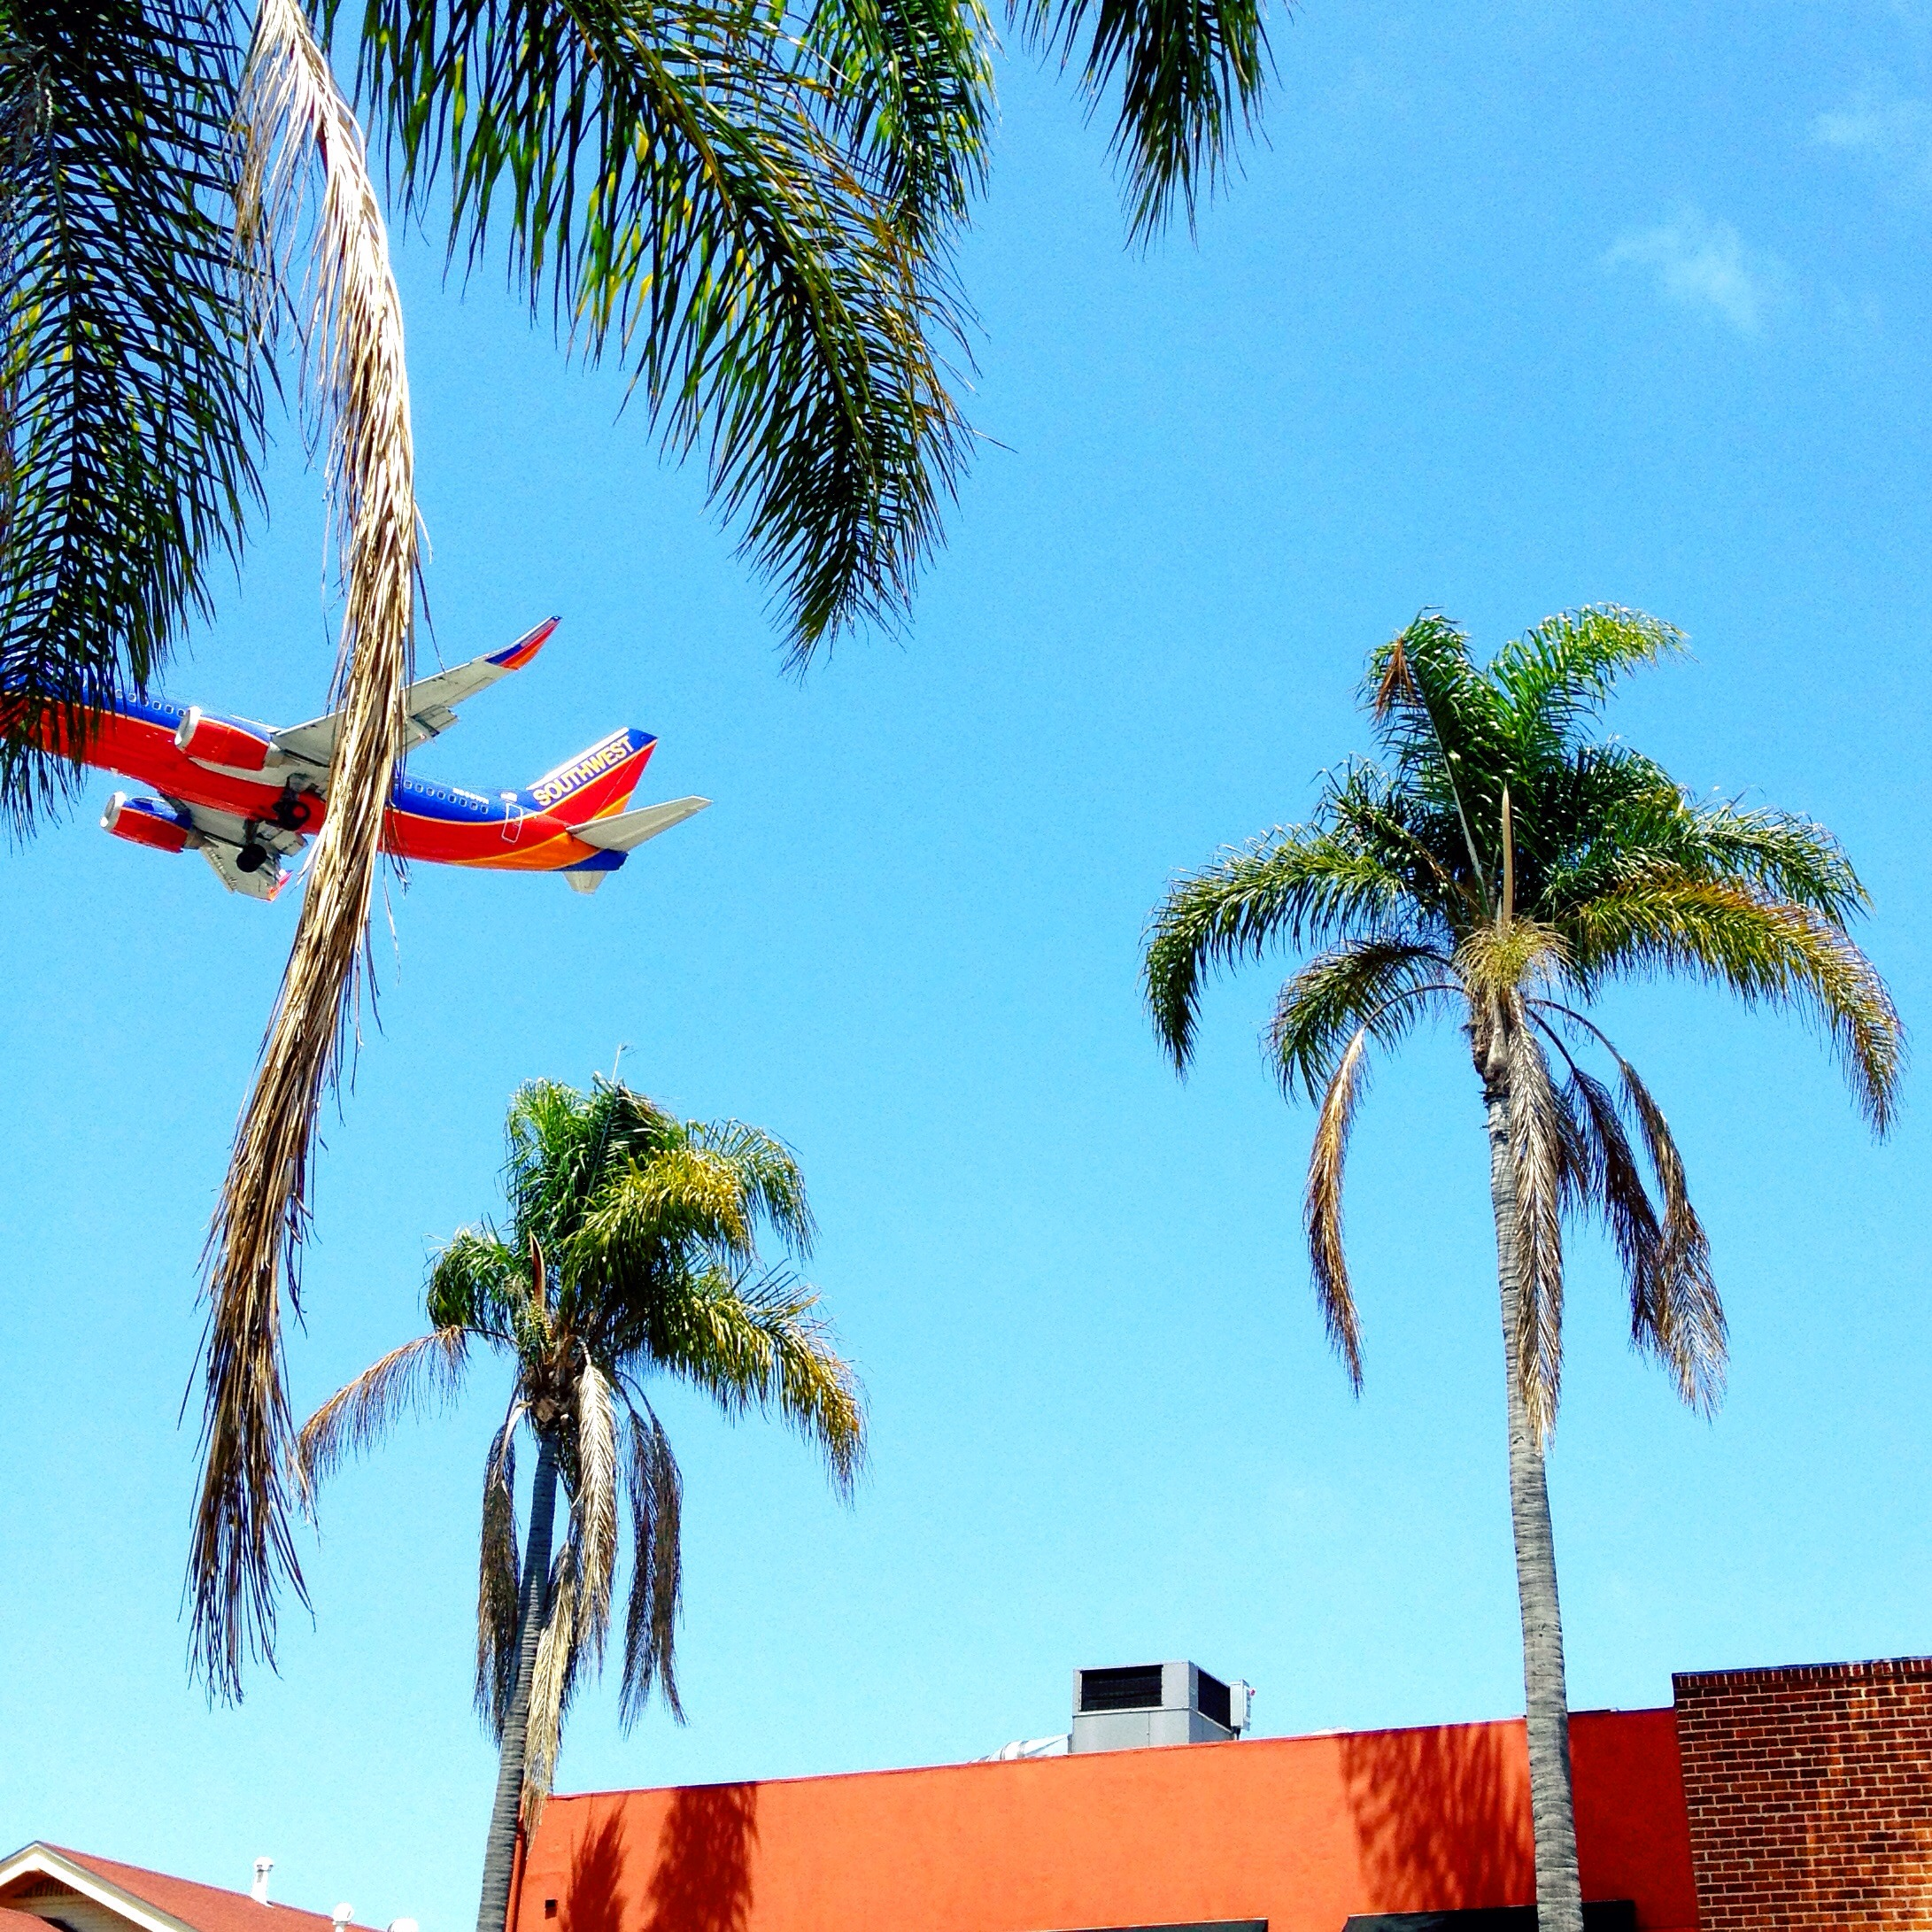 sandiego-littleitaly-flight